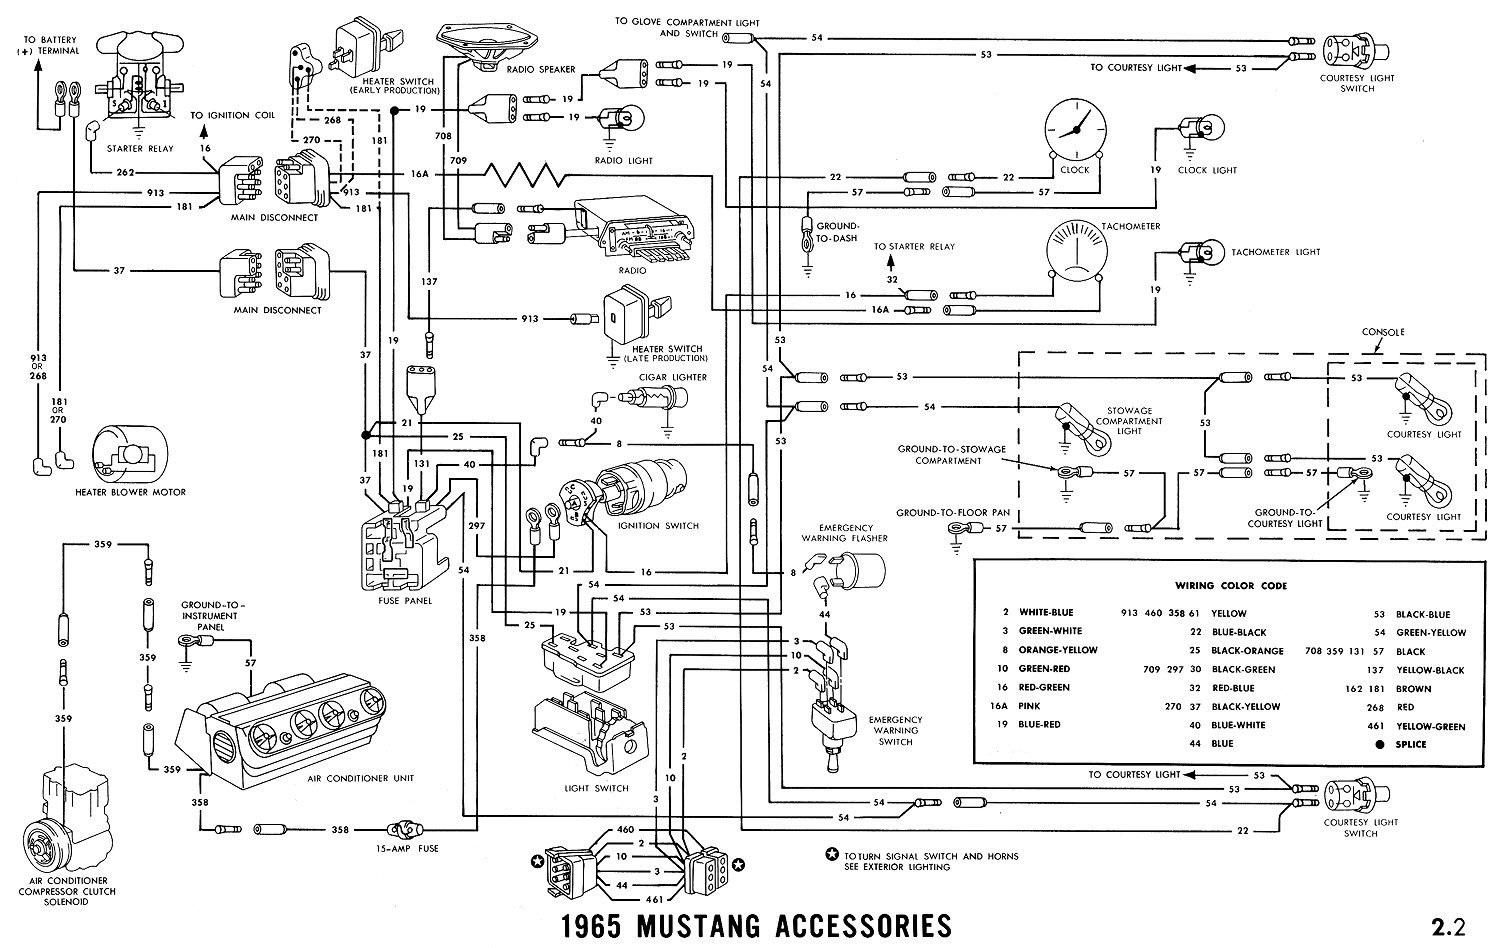 1965 ford mustang electrical schematics